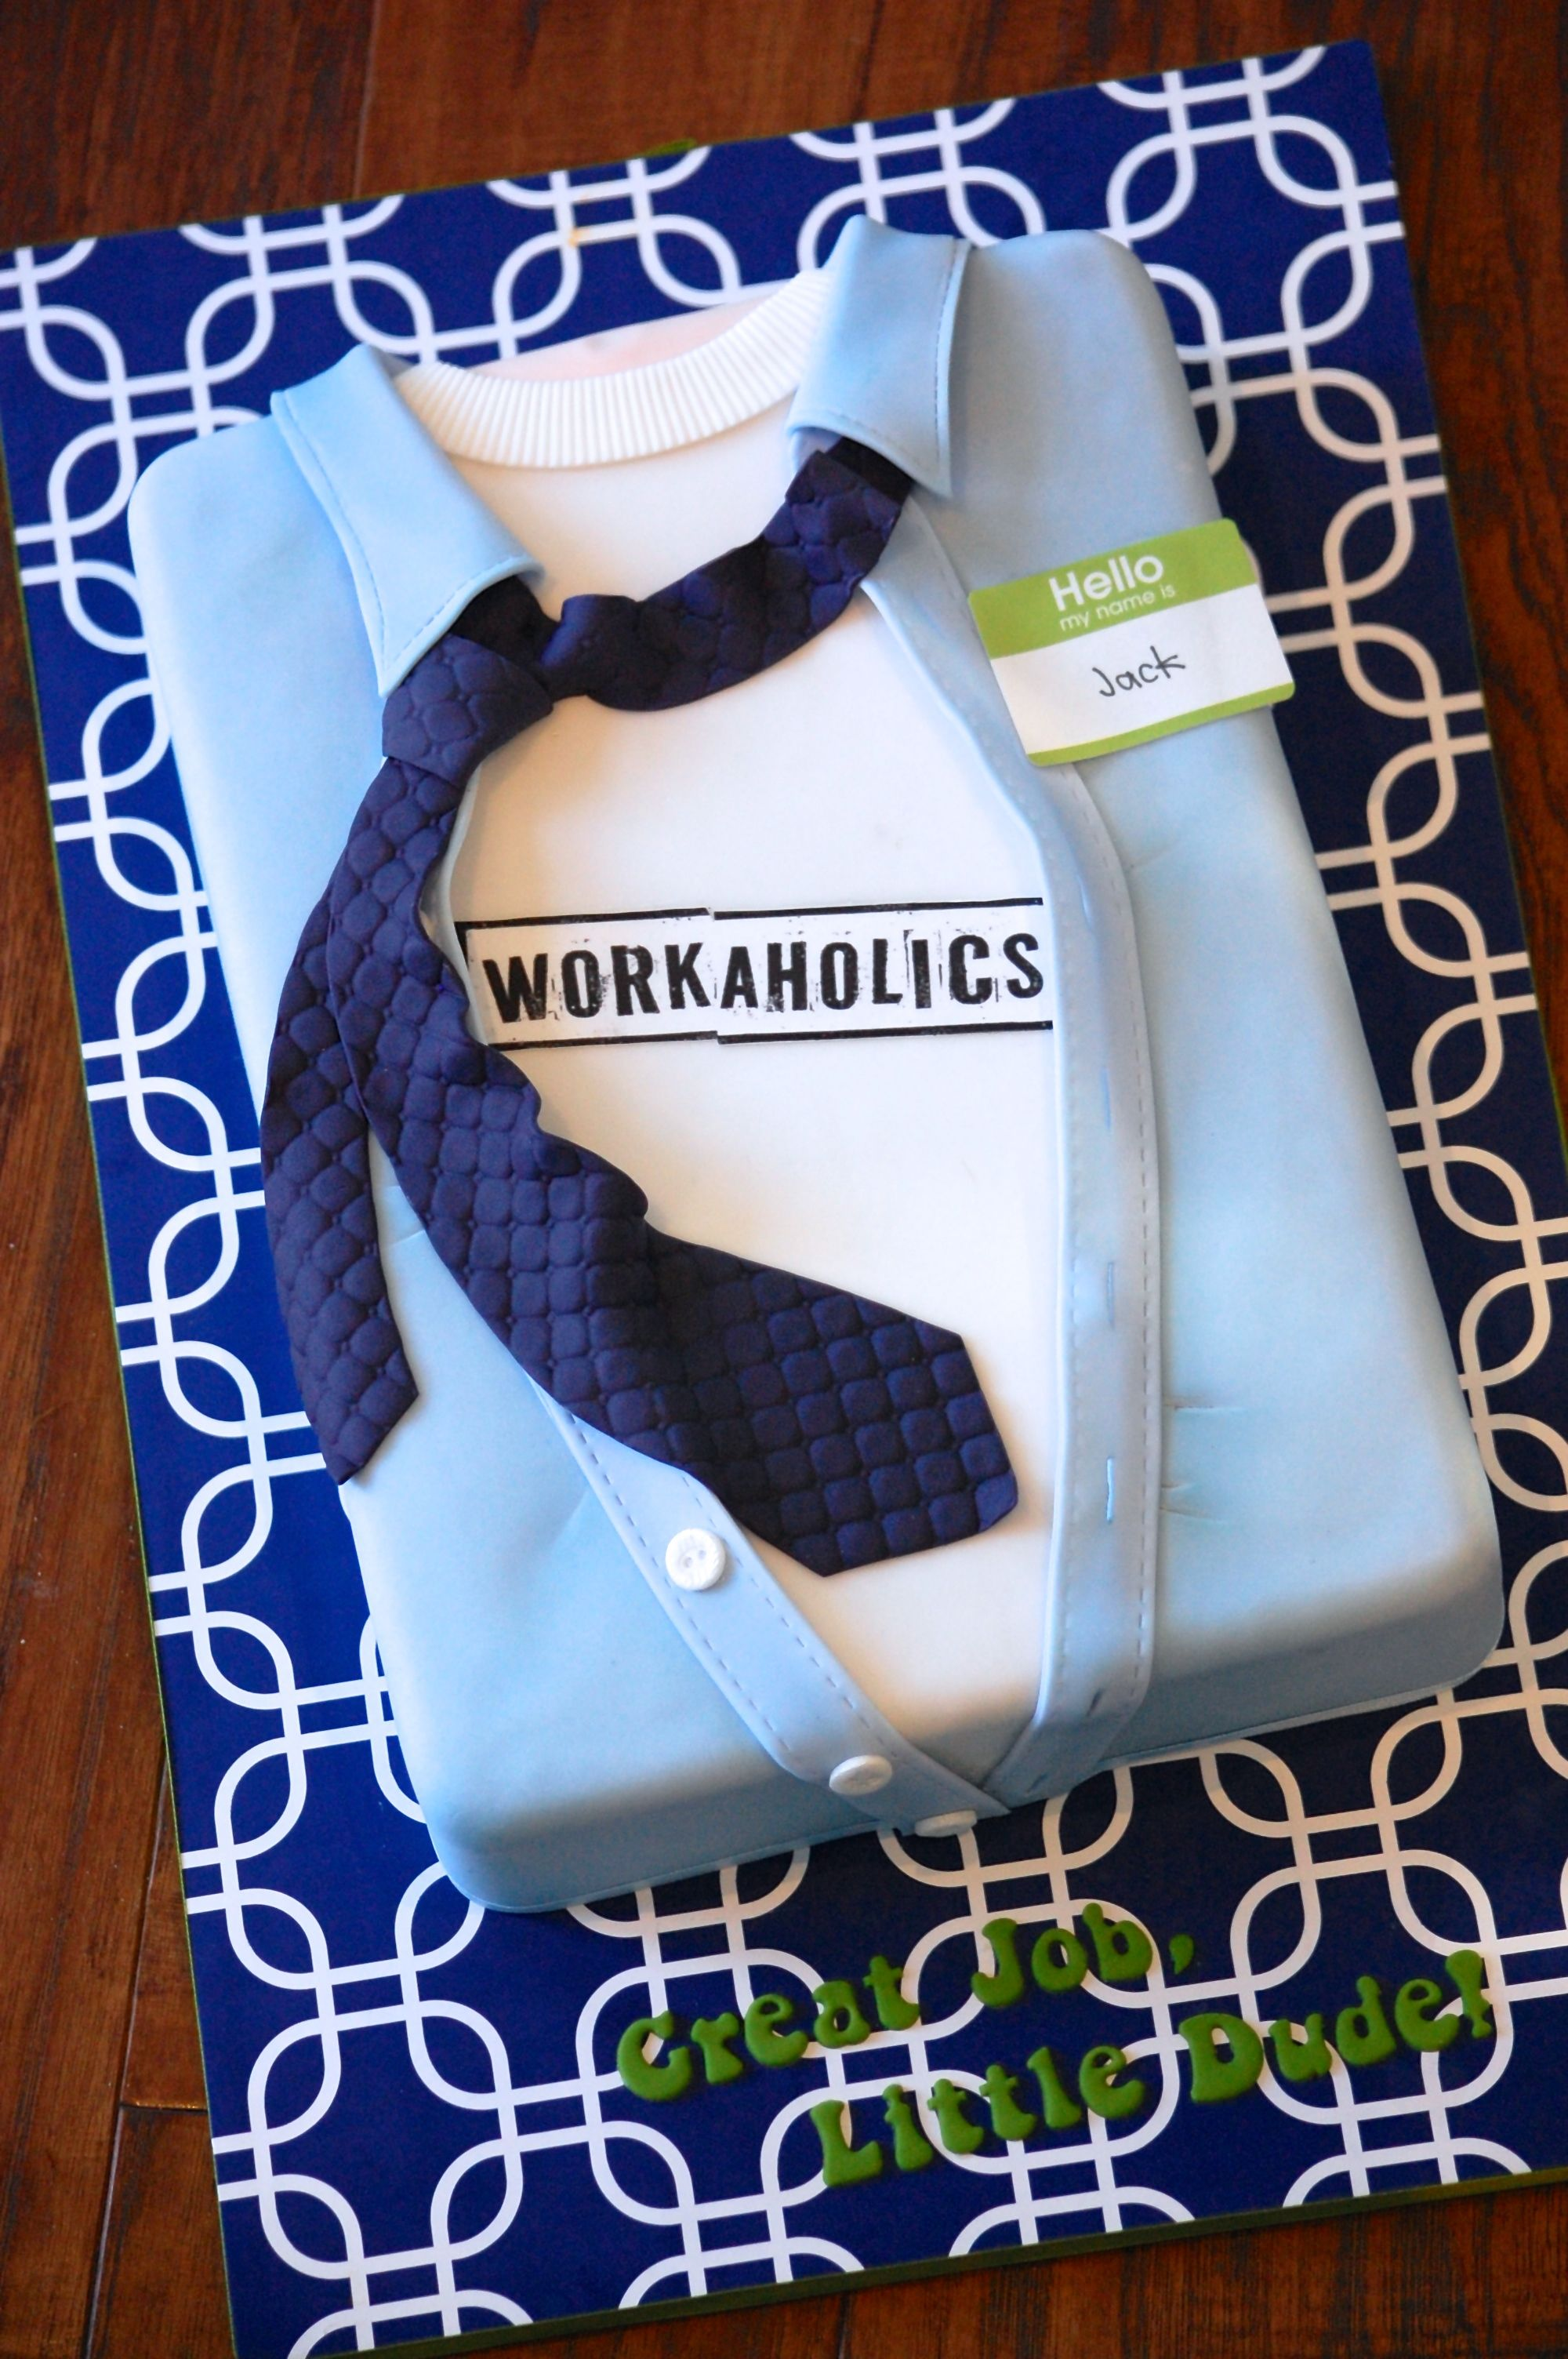 Shirt And Tie Cake For A Young Man Celebrating Guest Starring Appearance On Workaholics